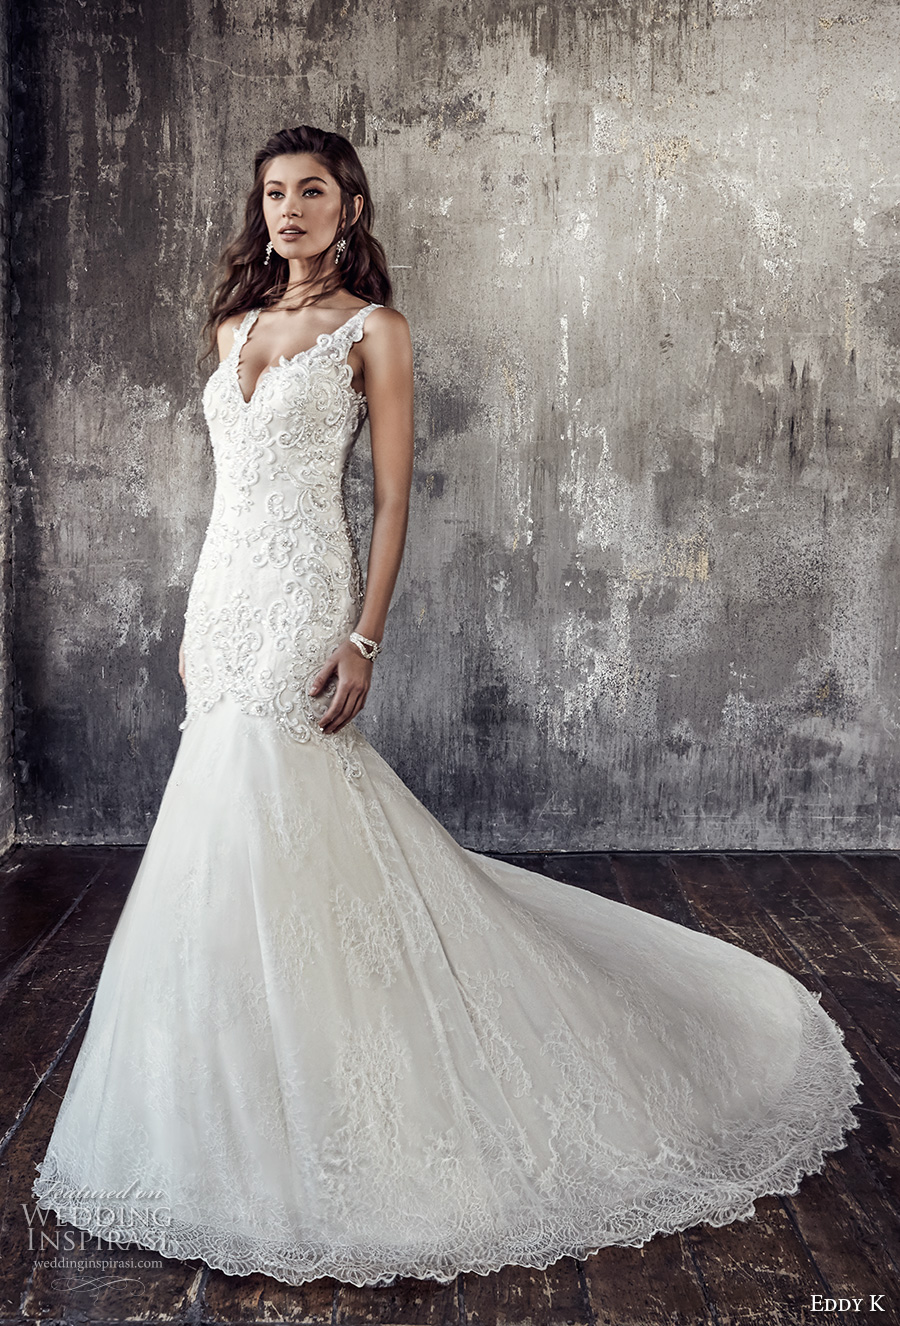 eddy k 2018 bridal sleeveless strap v neckline heavily embellished bodice elegant glamorous trumpet wedding dress covered lace back chapel train (203) mv